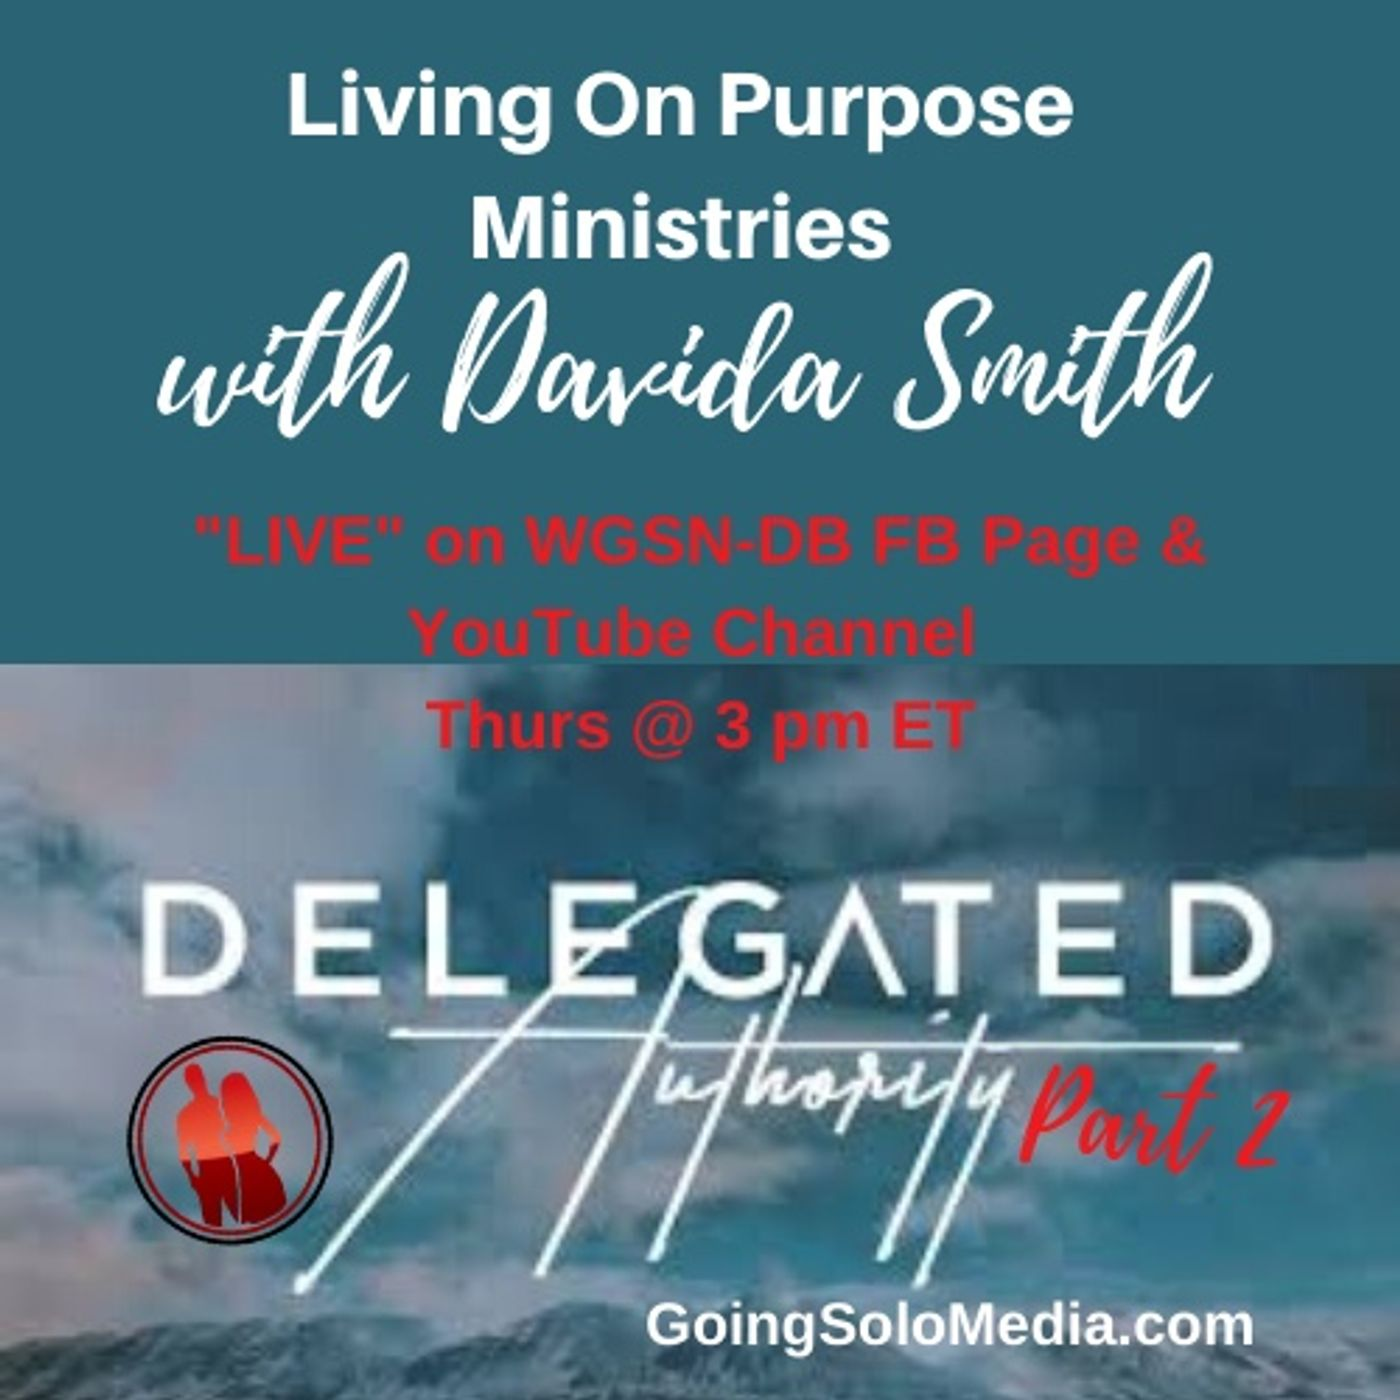 Delegated Authority Part 2 with Davida Smith